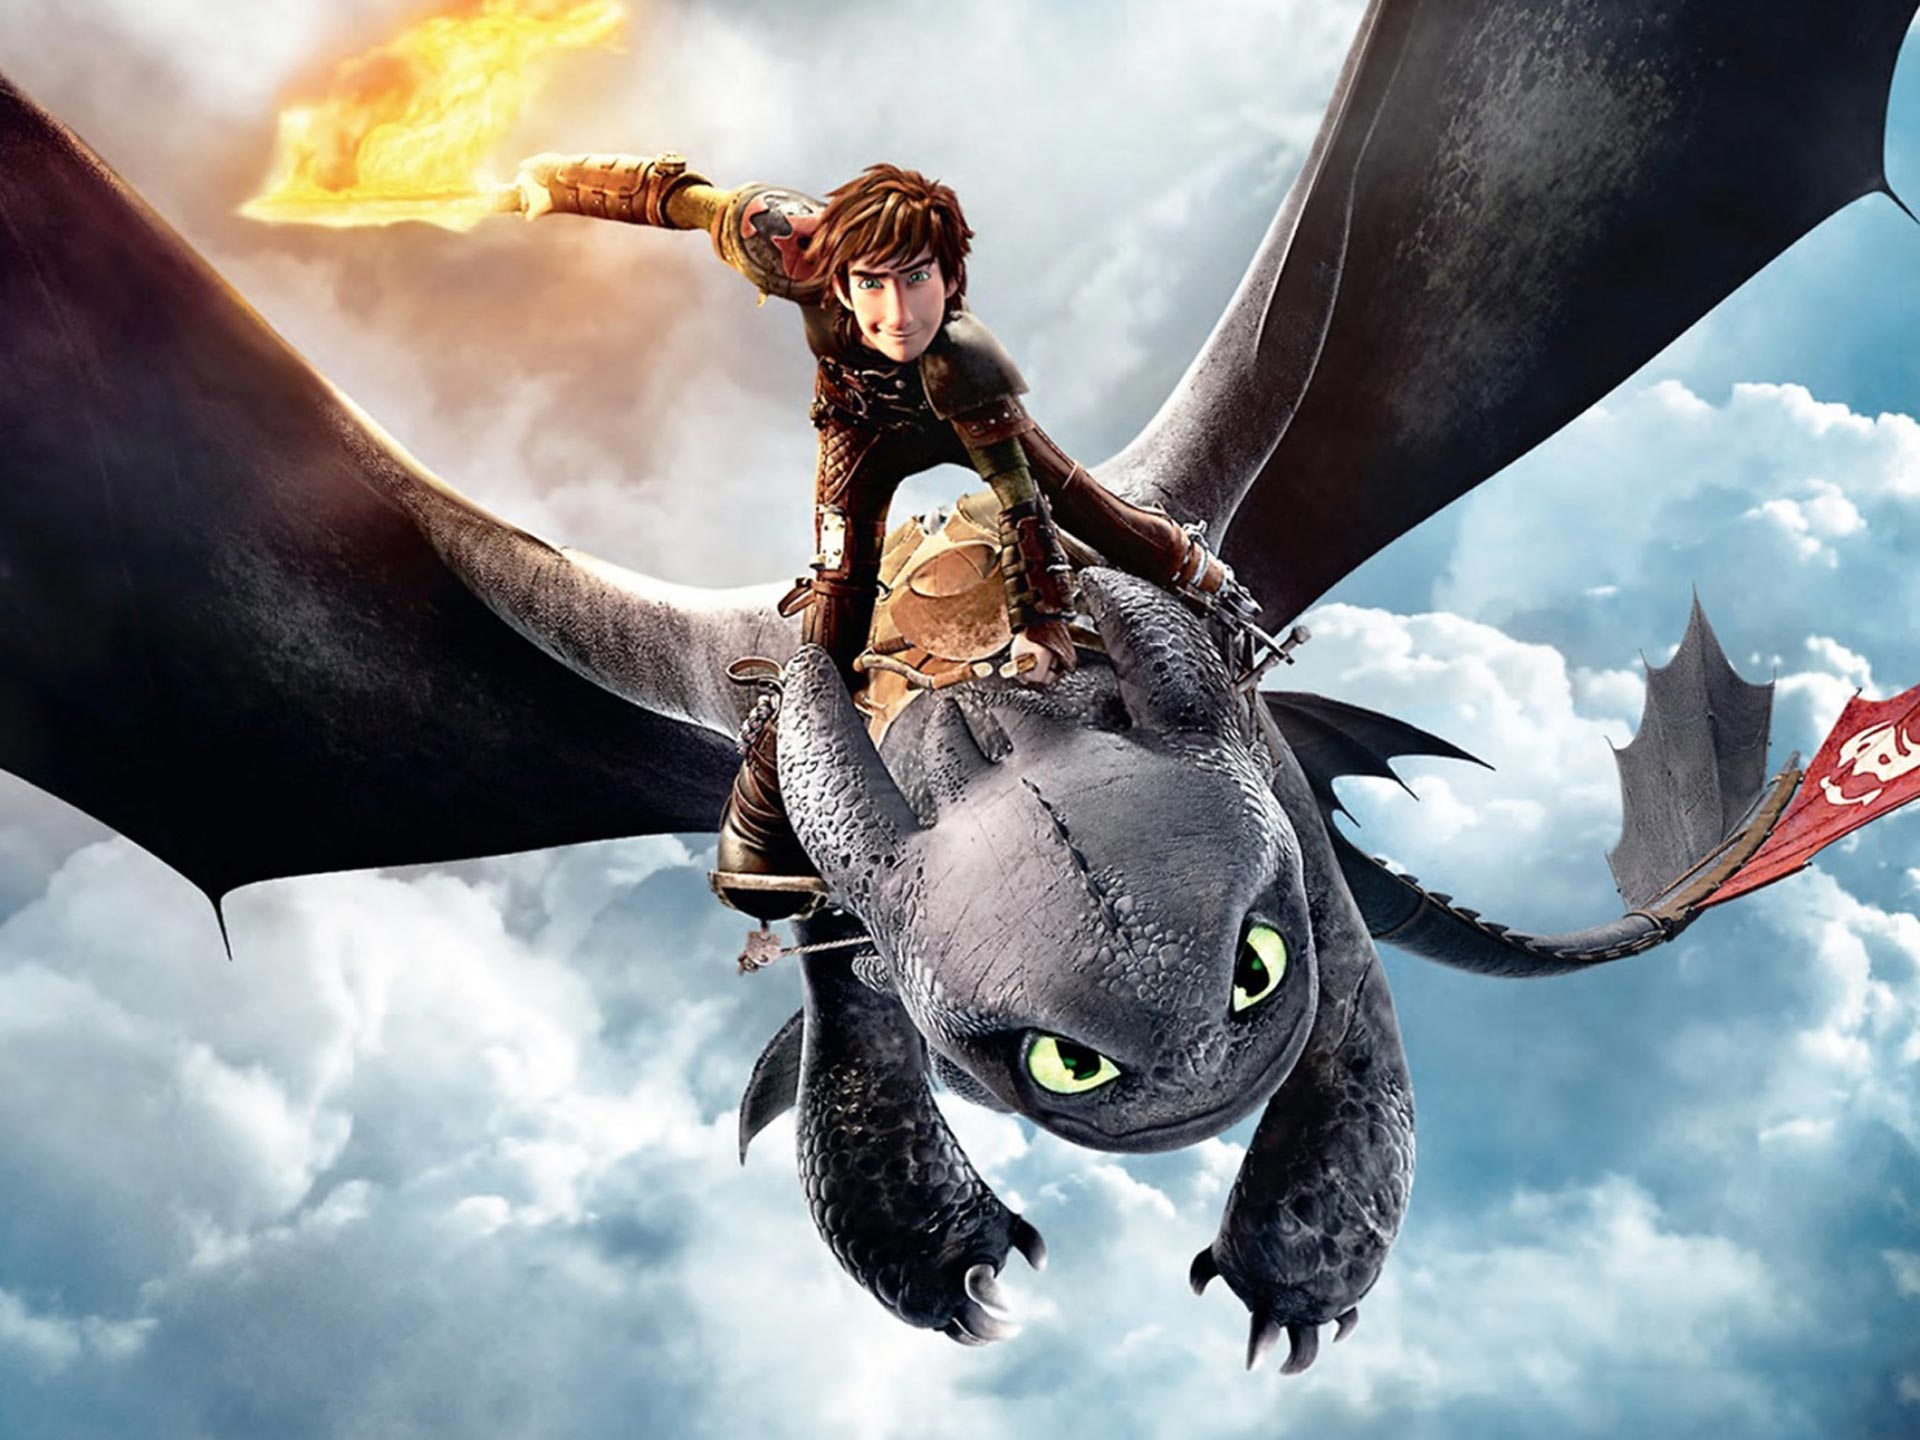 How To Train Your Dragon Wallpaper 1920x1440 69856